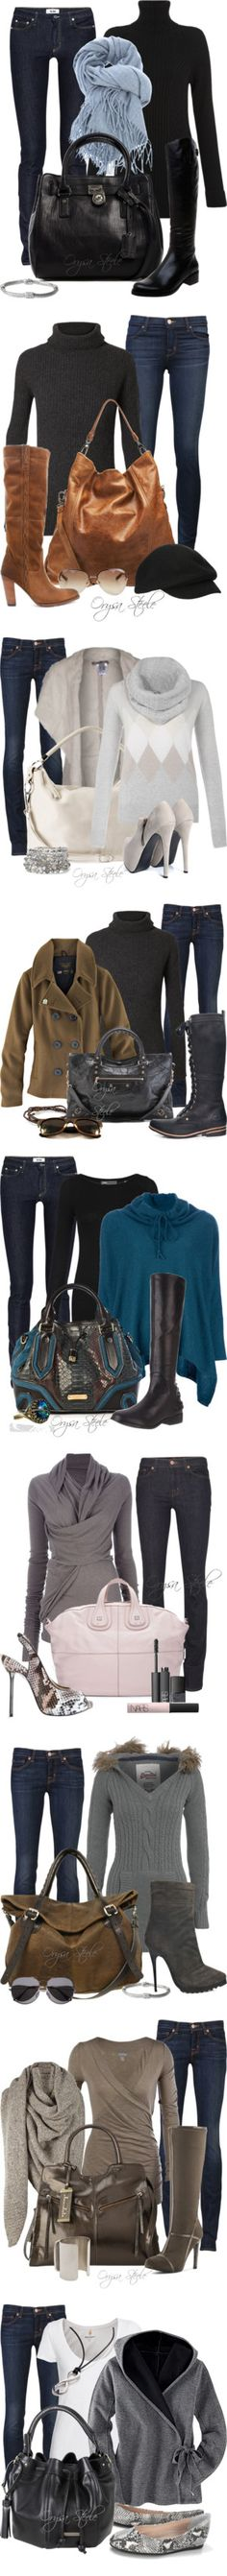 """""""The Denim Collection"""" by orysa on Polyvore"""